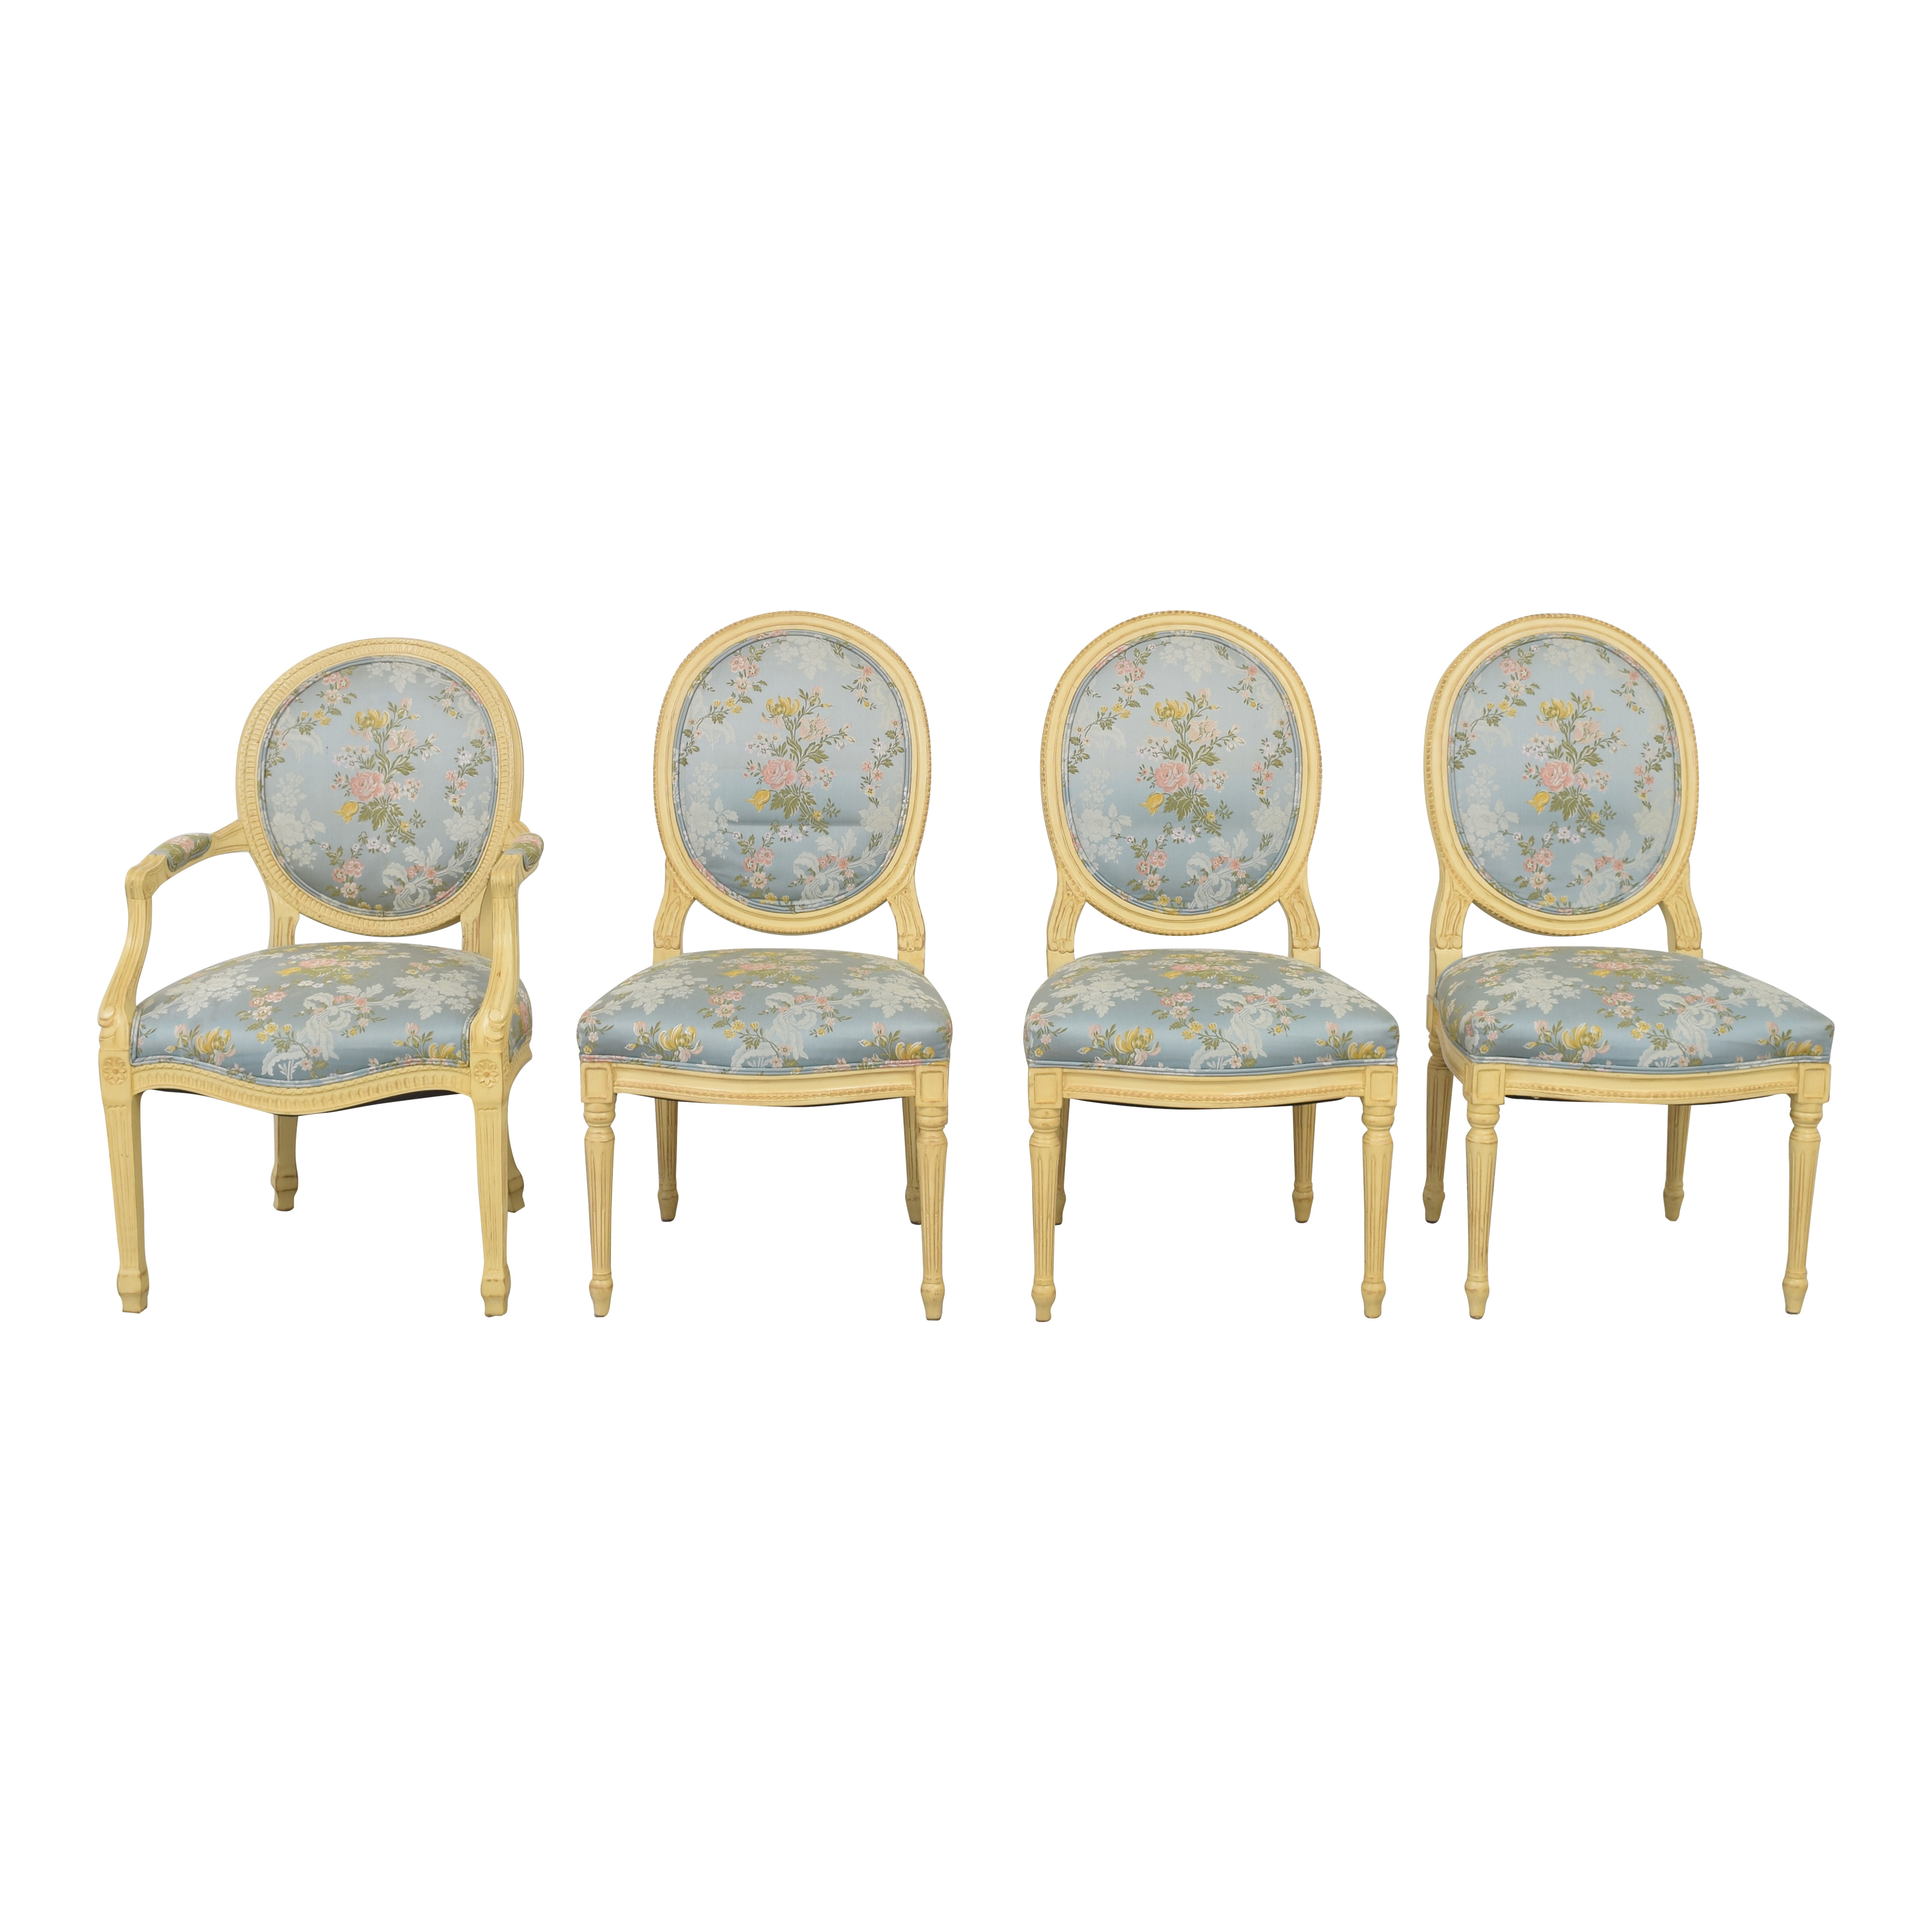 Artistic Frame Artistic Frame Dining Chairs ma